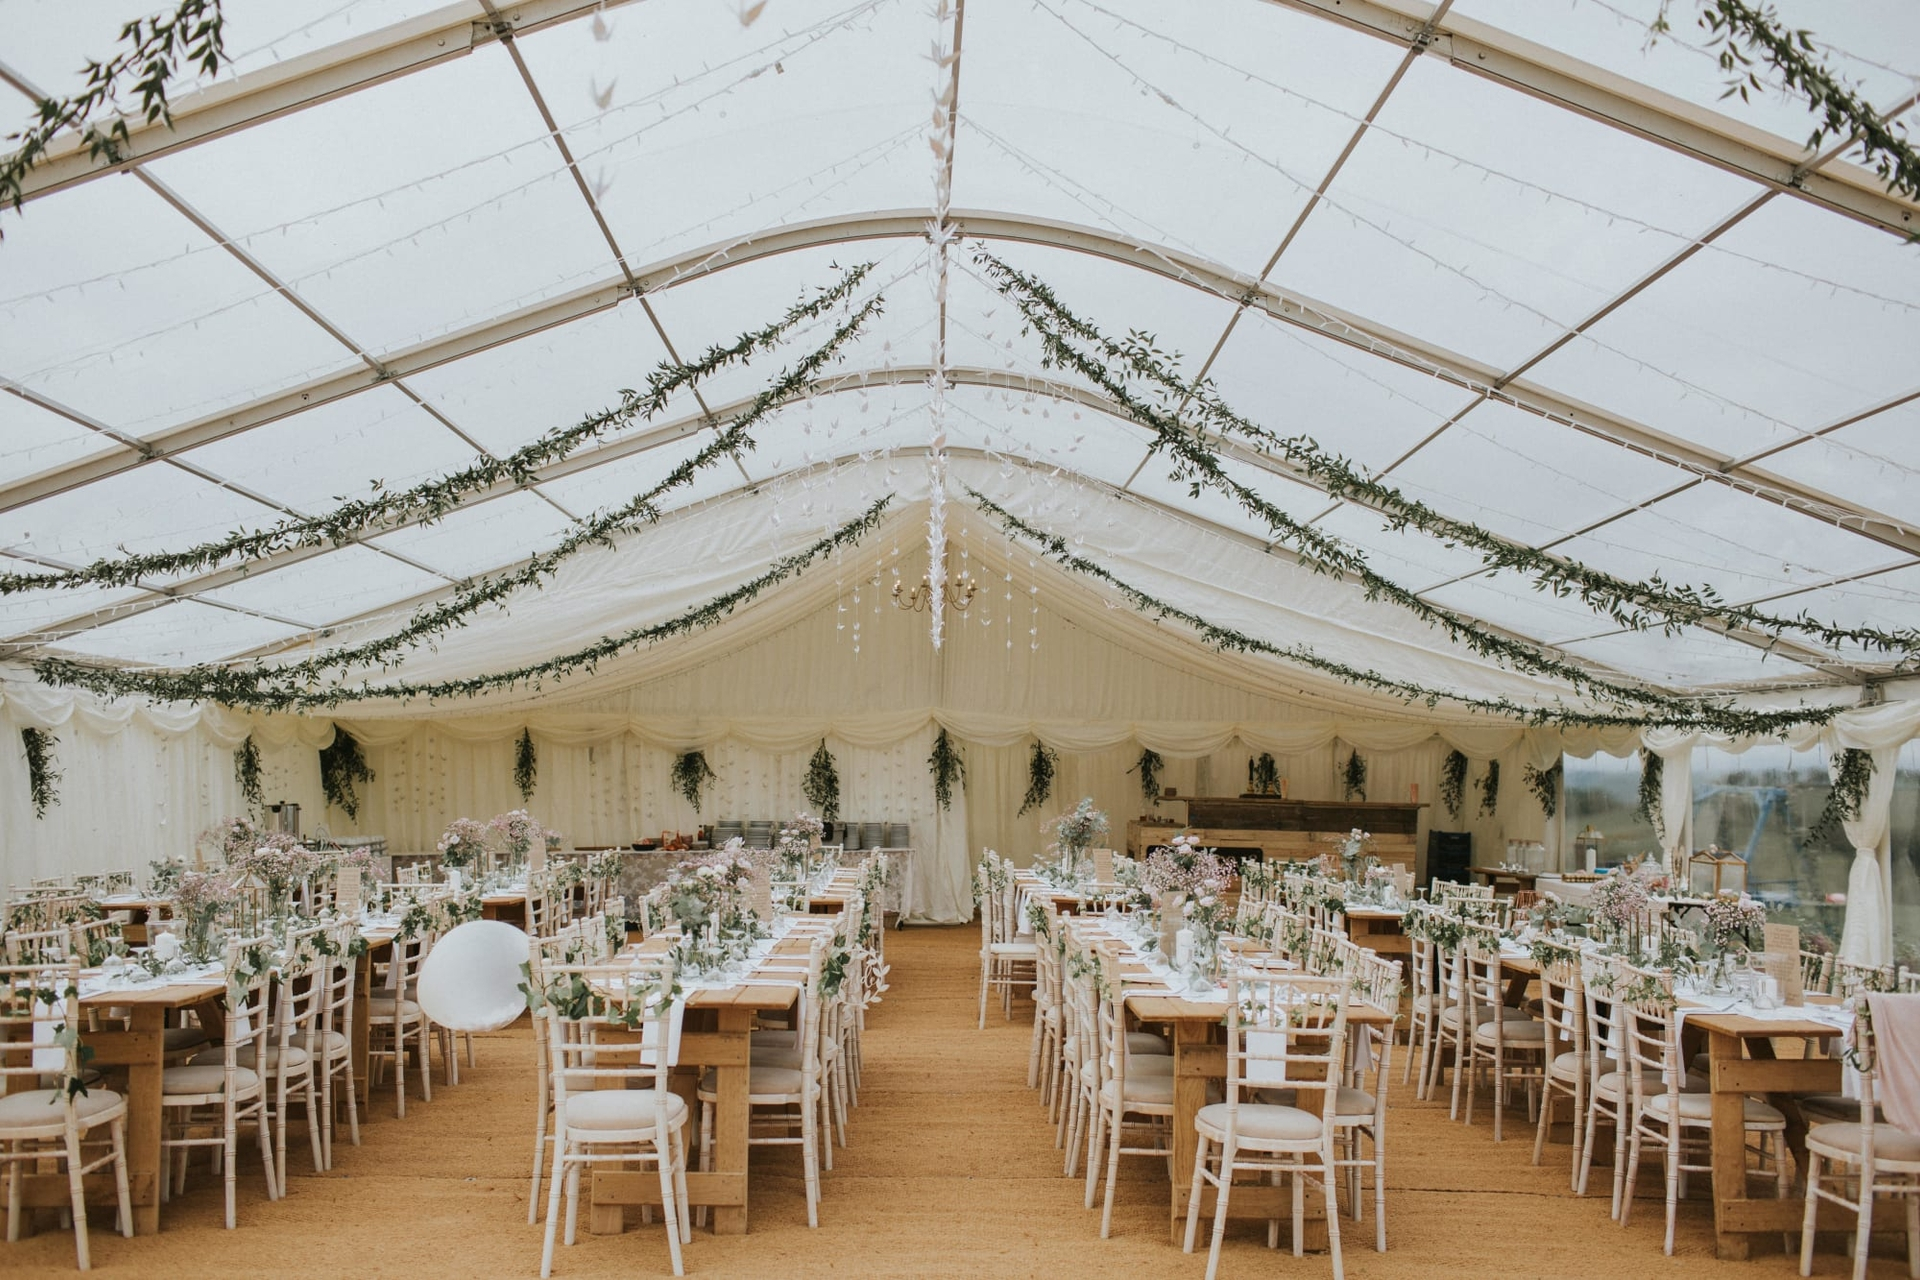 Long rows of tables formally set up in a wedding reception marquee